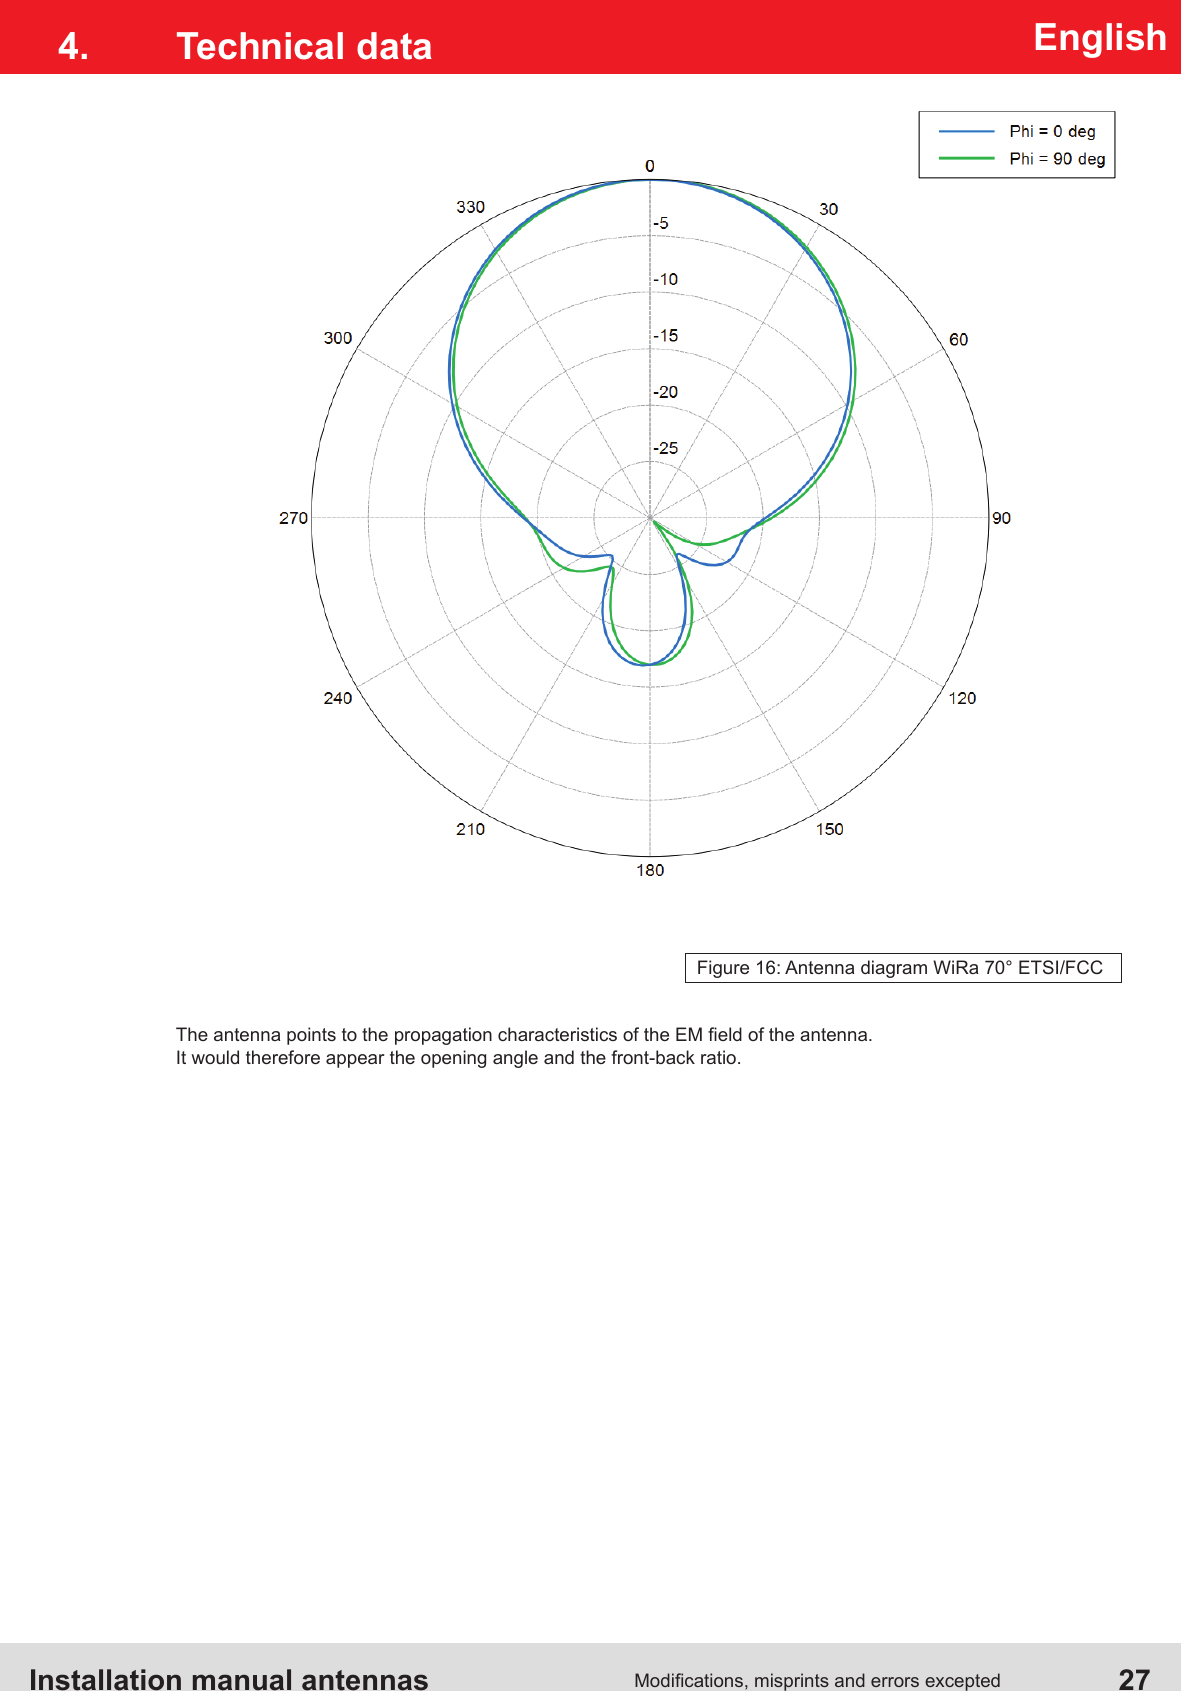 Installation manual antennas   27Modications, misprints and errors exceptedEnglishThe antenna points to the propagation characteristics of the EM eld of the antenna.It would therefore appear the opening angle and the front-back ratio.4.  Technical dataFigure 16: Antenna diagram WiRa 70° ETSI/FCC